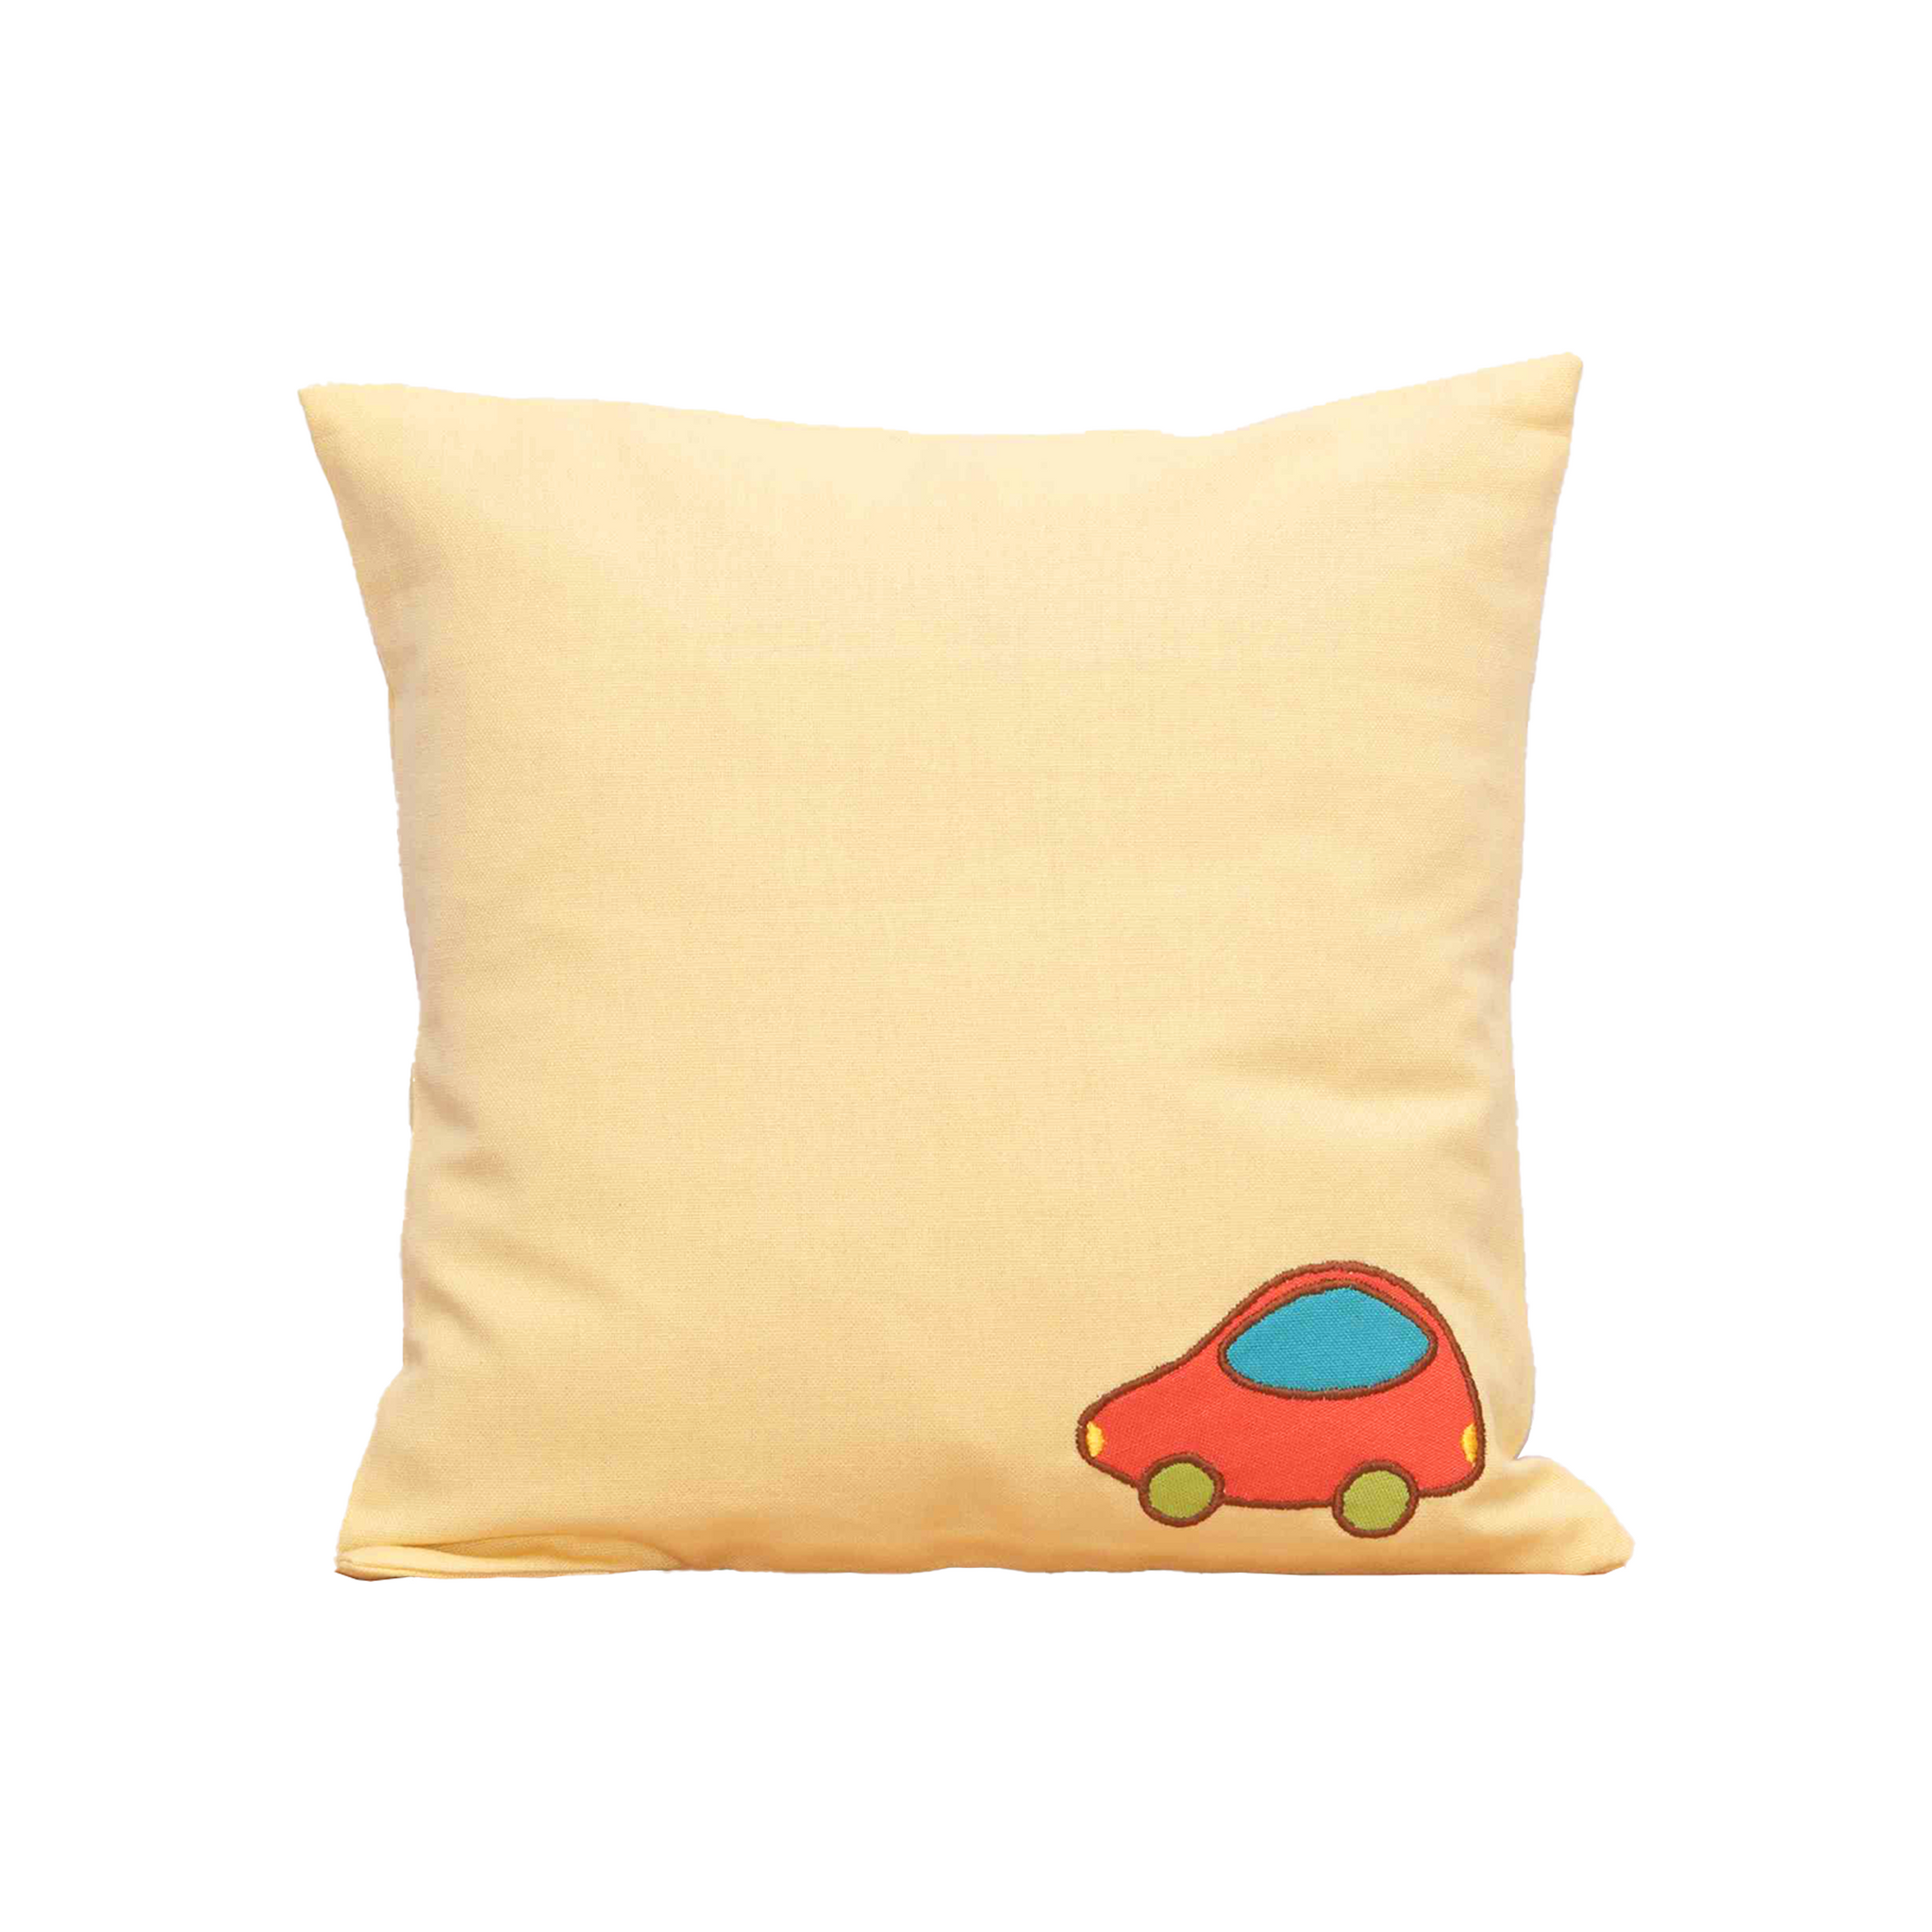 "Traffic 12"" x 12"" Cushion Cover"